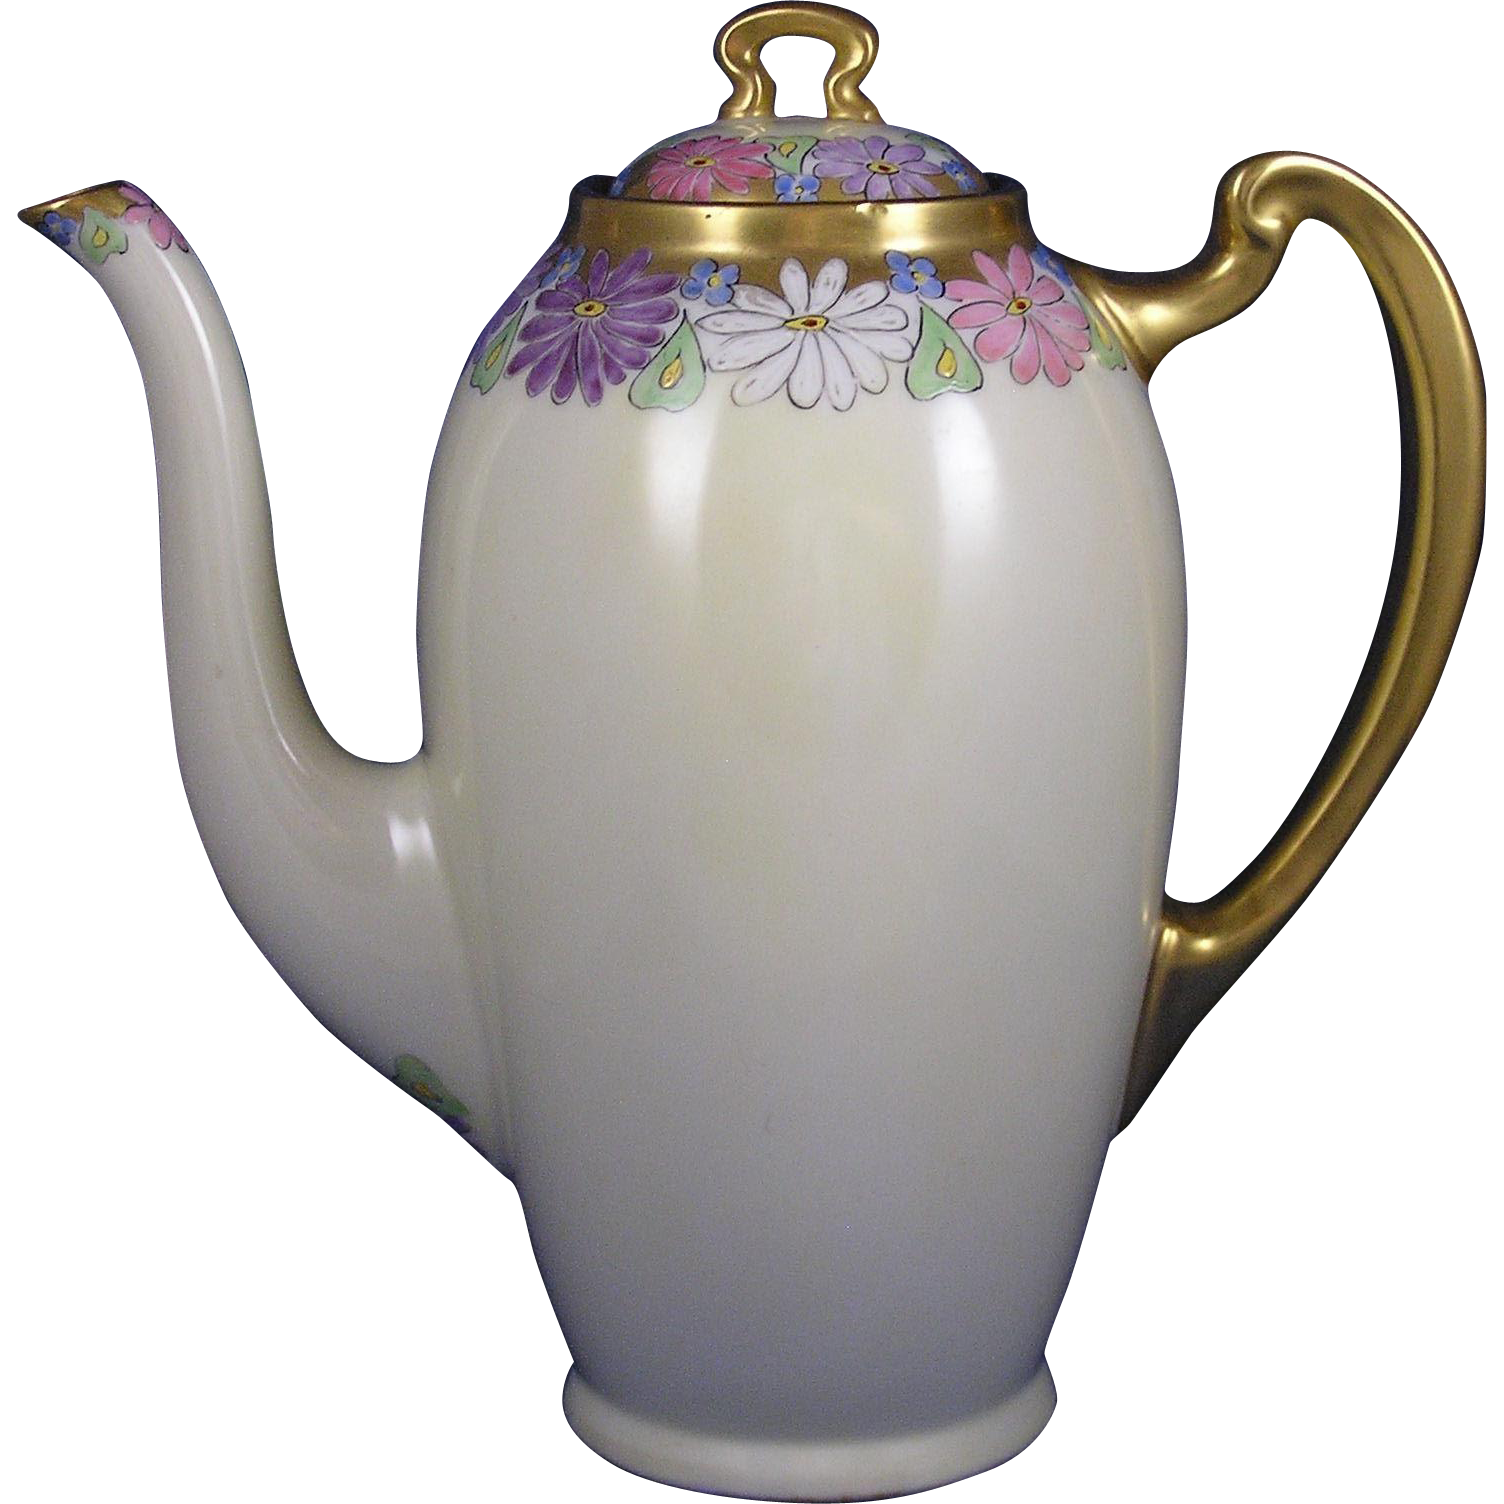 Lenox Belleek Arts & Crafts Enameled Floral Motif Coffee Pot (c.1906-1924)